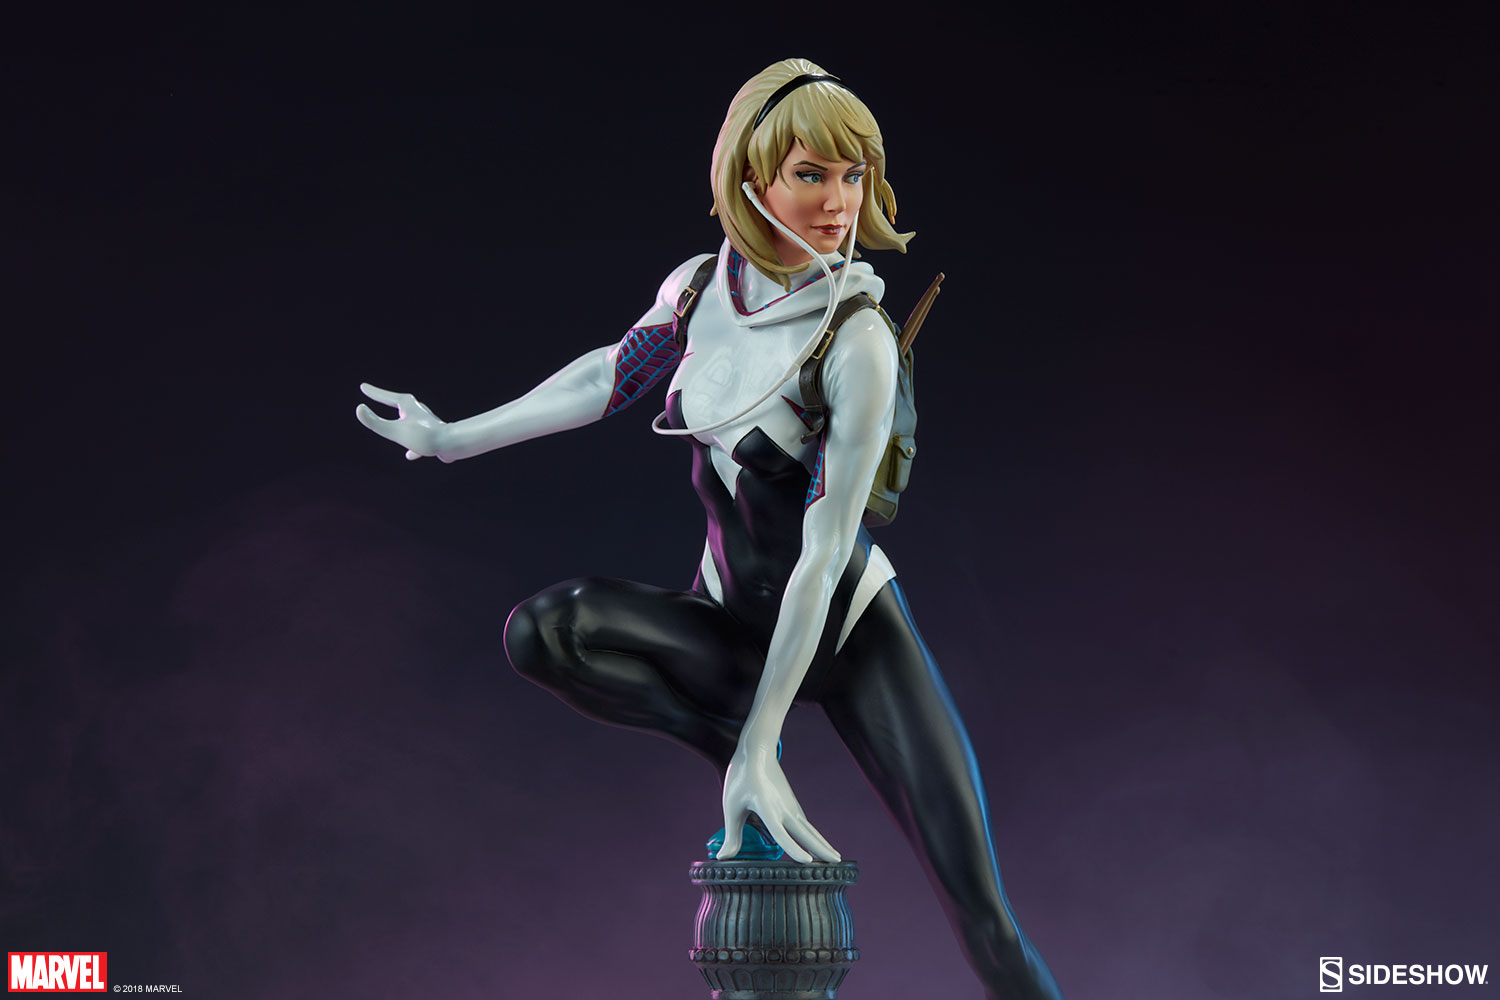 45716a027 Marvel Spider-Gwen Statue by Sideshow Collectibles | Sideshow ...